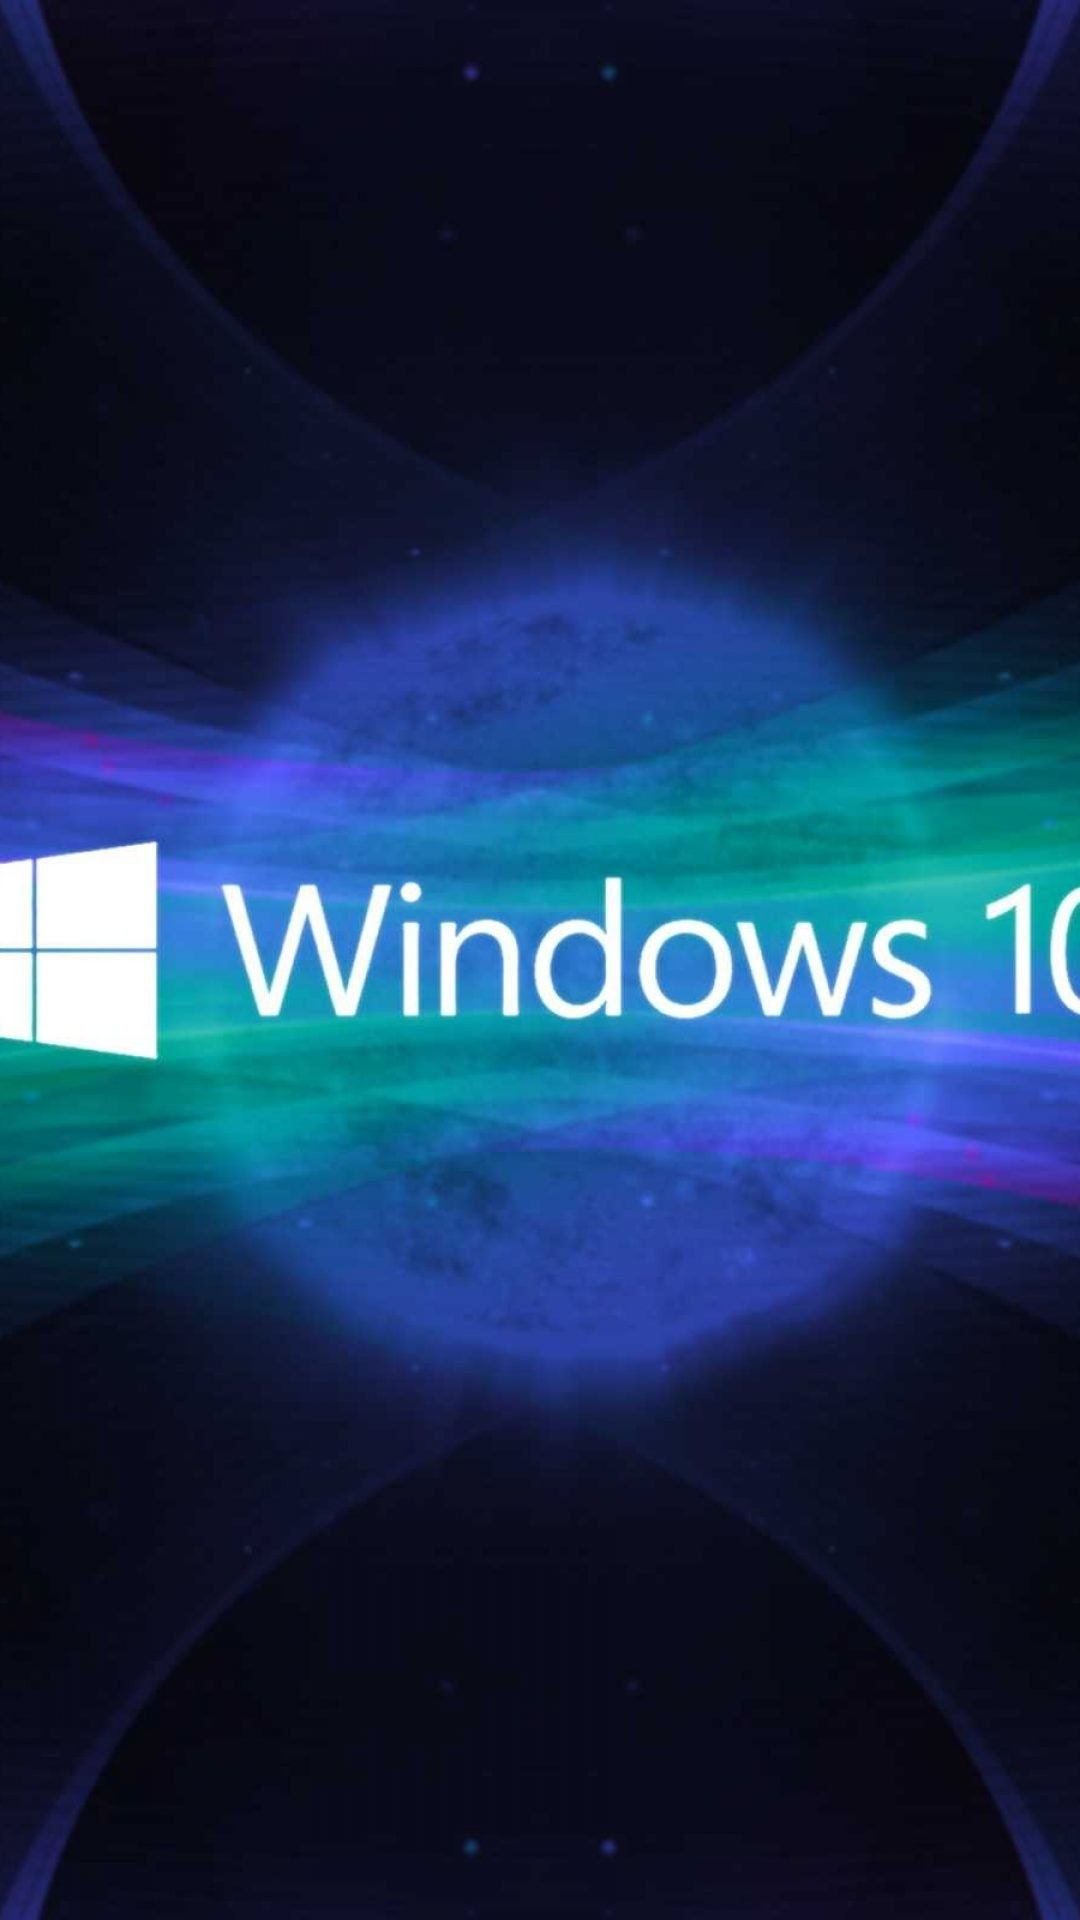 1080x1920 windows 10 wallpaper hd 3d for desktop (With